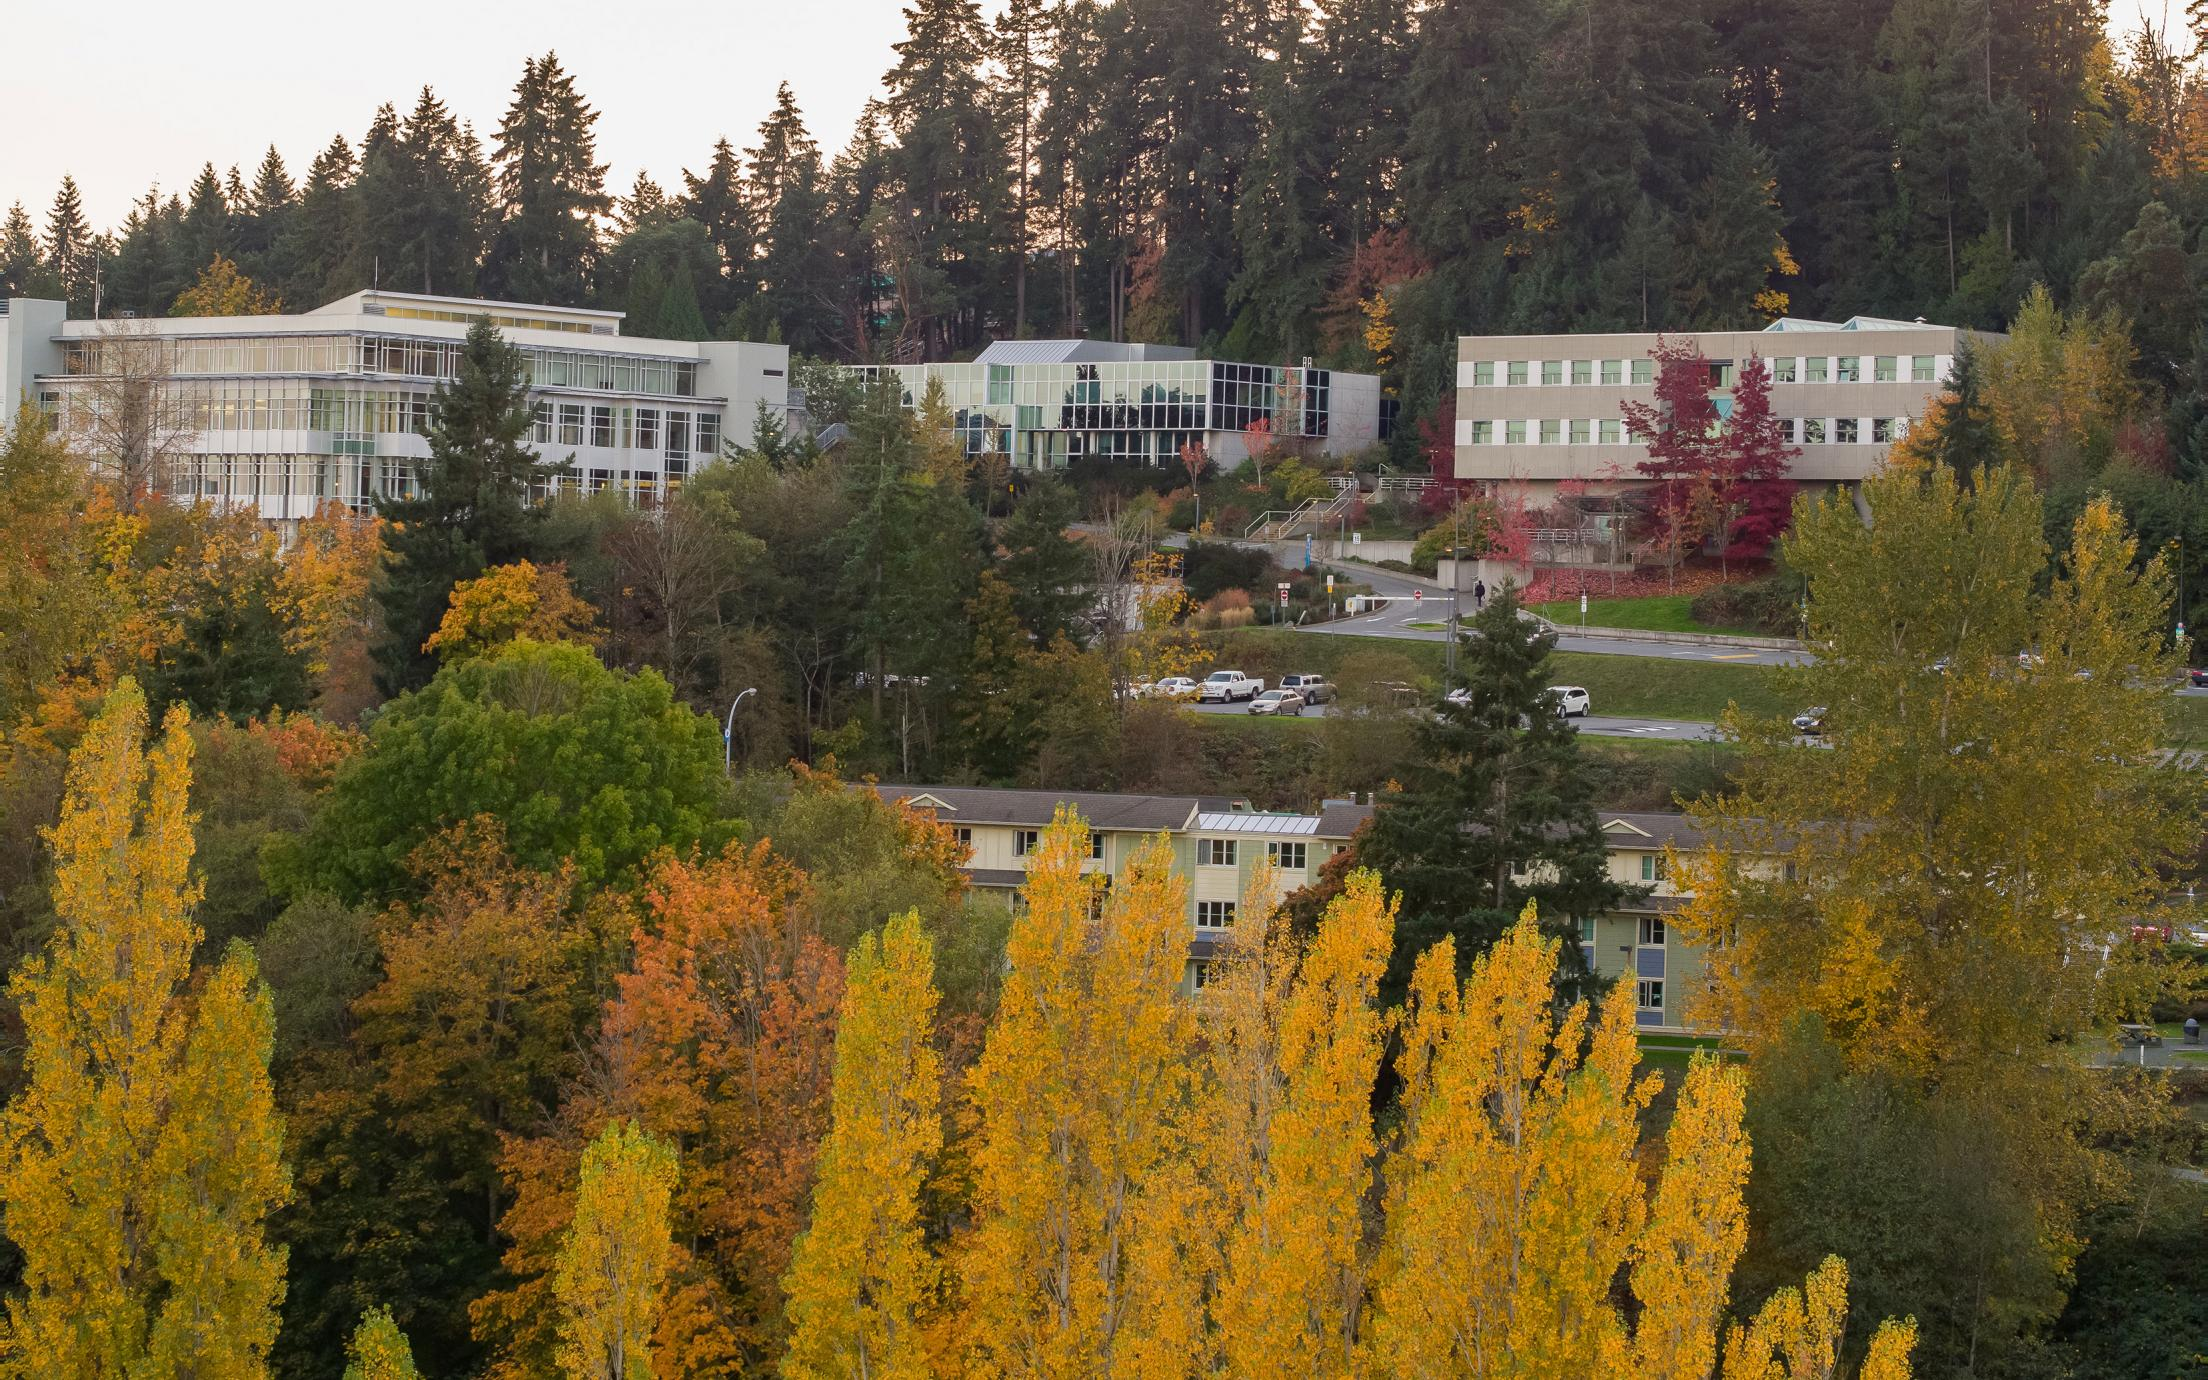 VIU Nanaimo Campus looking southeast